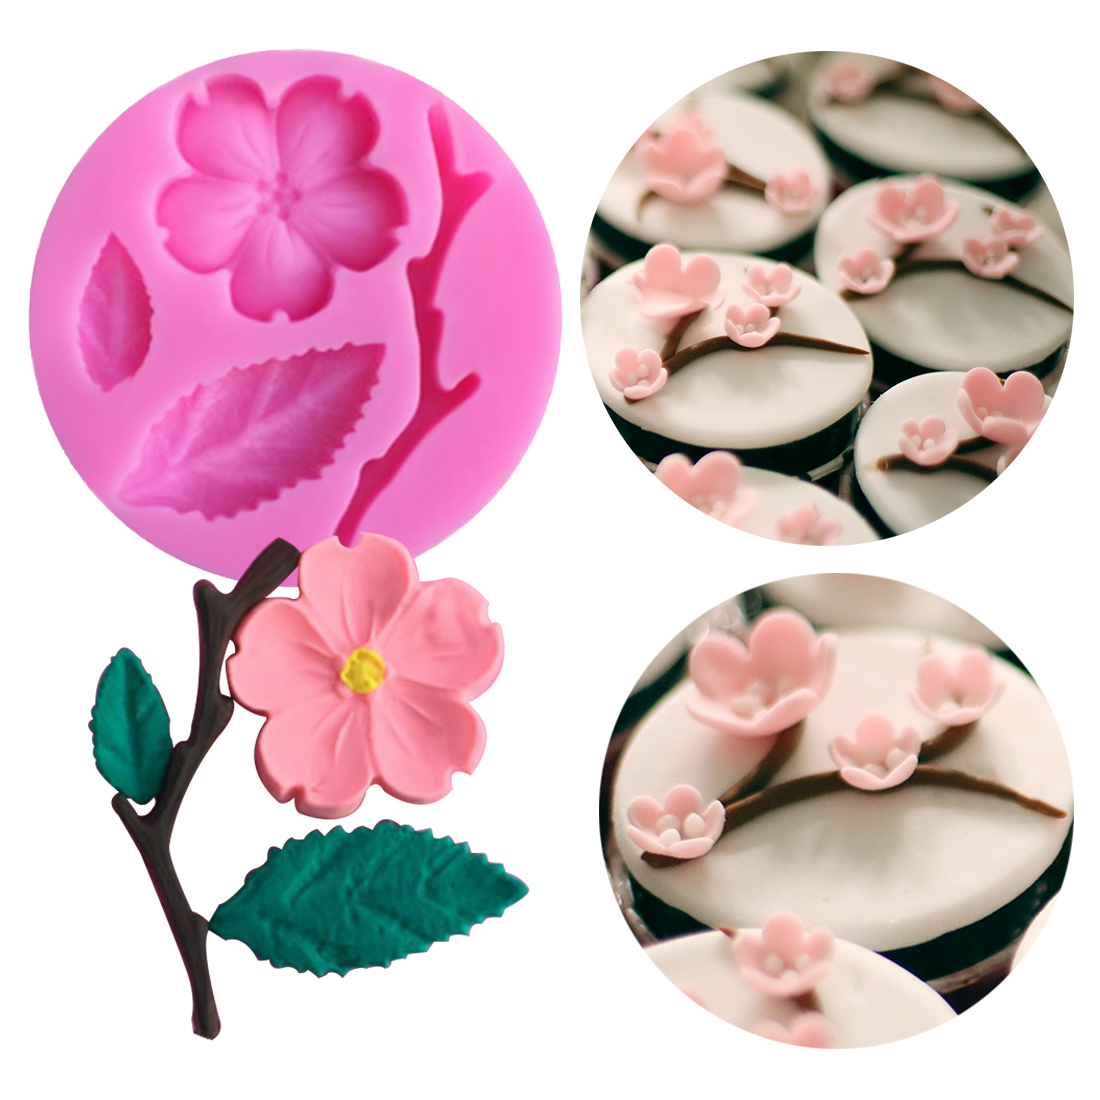 Candy Mould 1PC Peach Blossom Shape Fondant Molds Cake Decorating Tools Chocolate Mold Soap Cake Stencils Kitchen DIY Tools